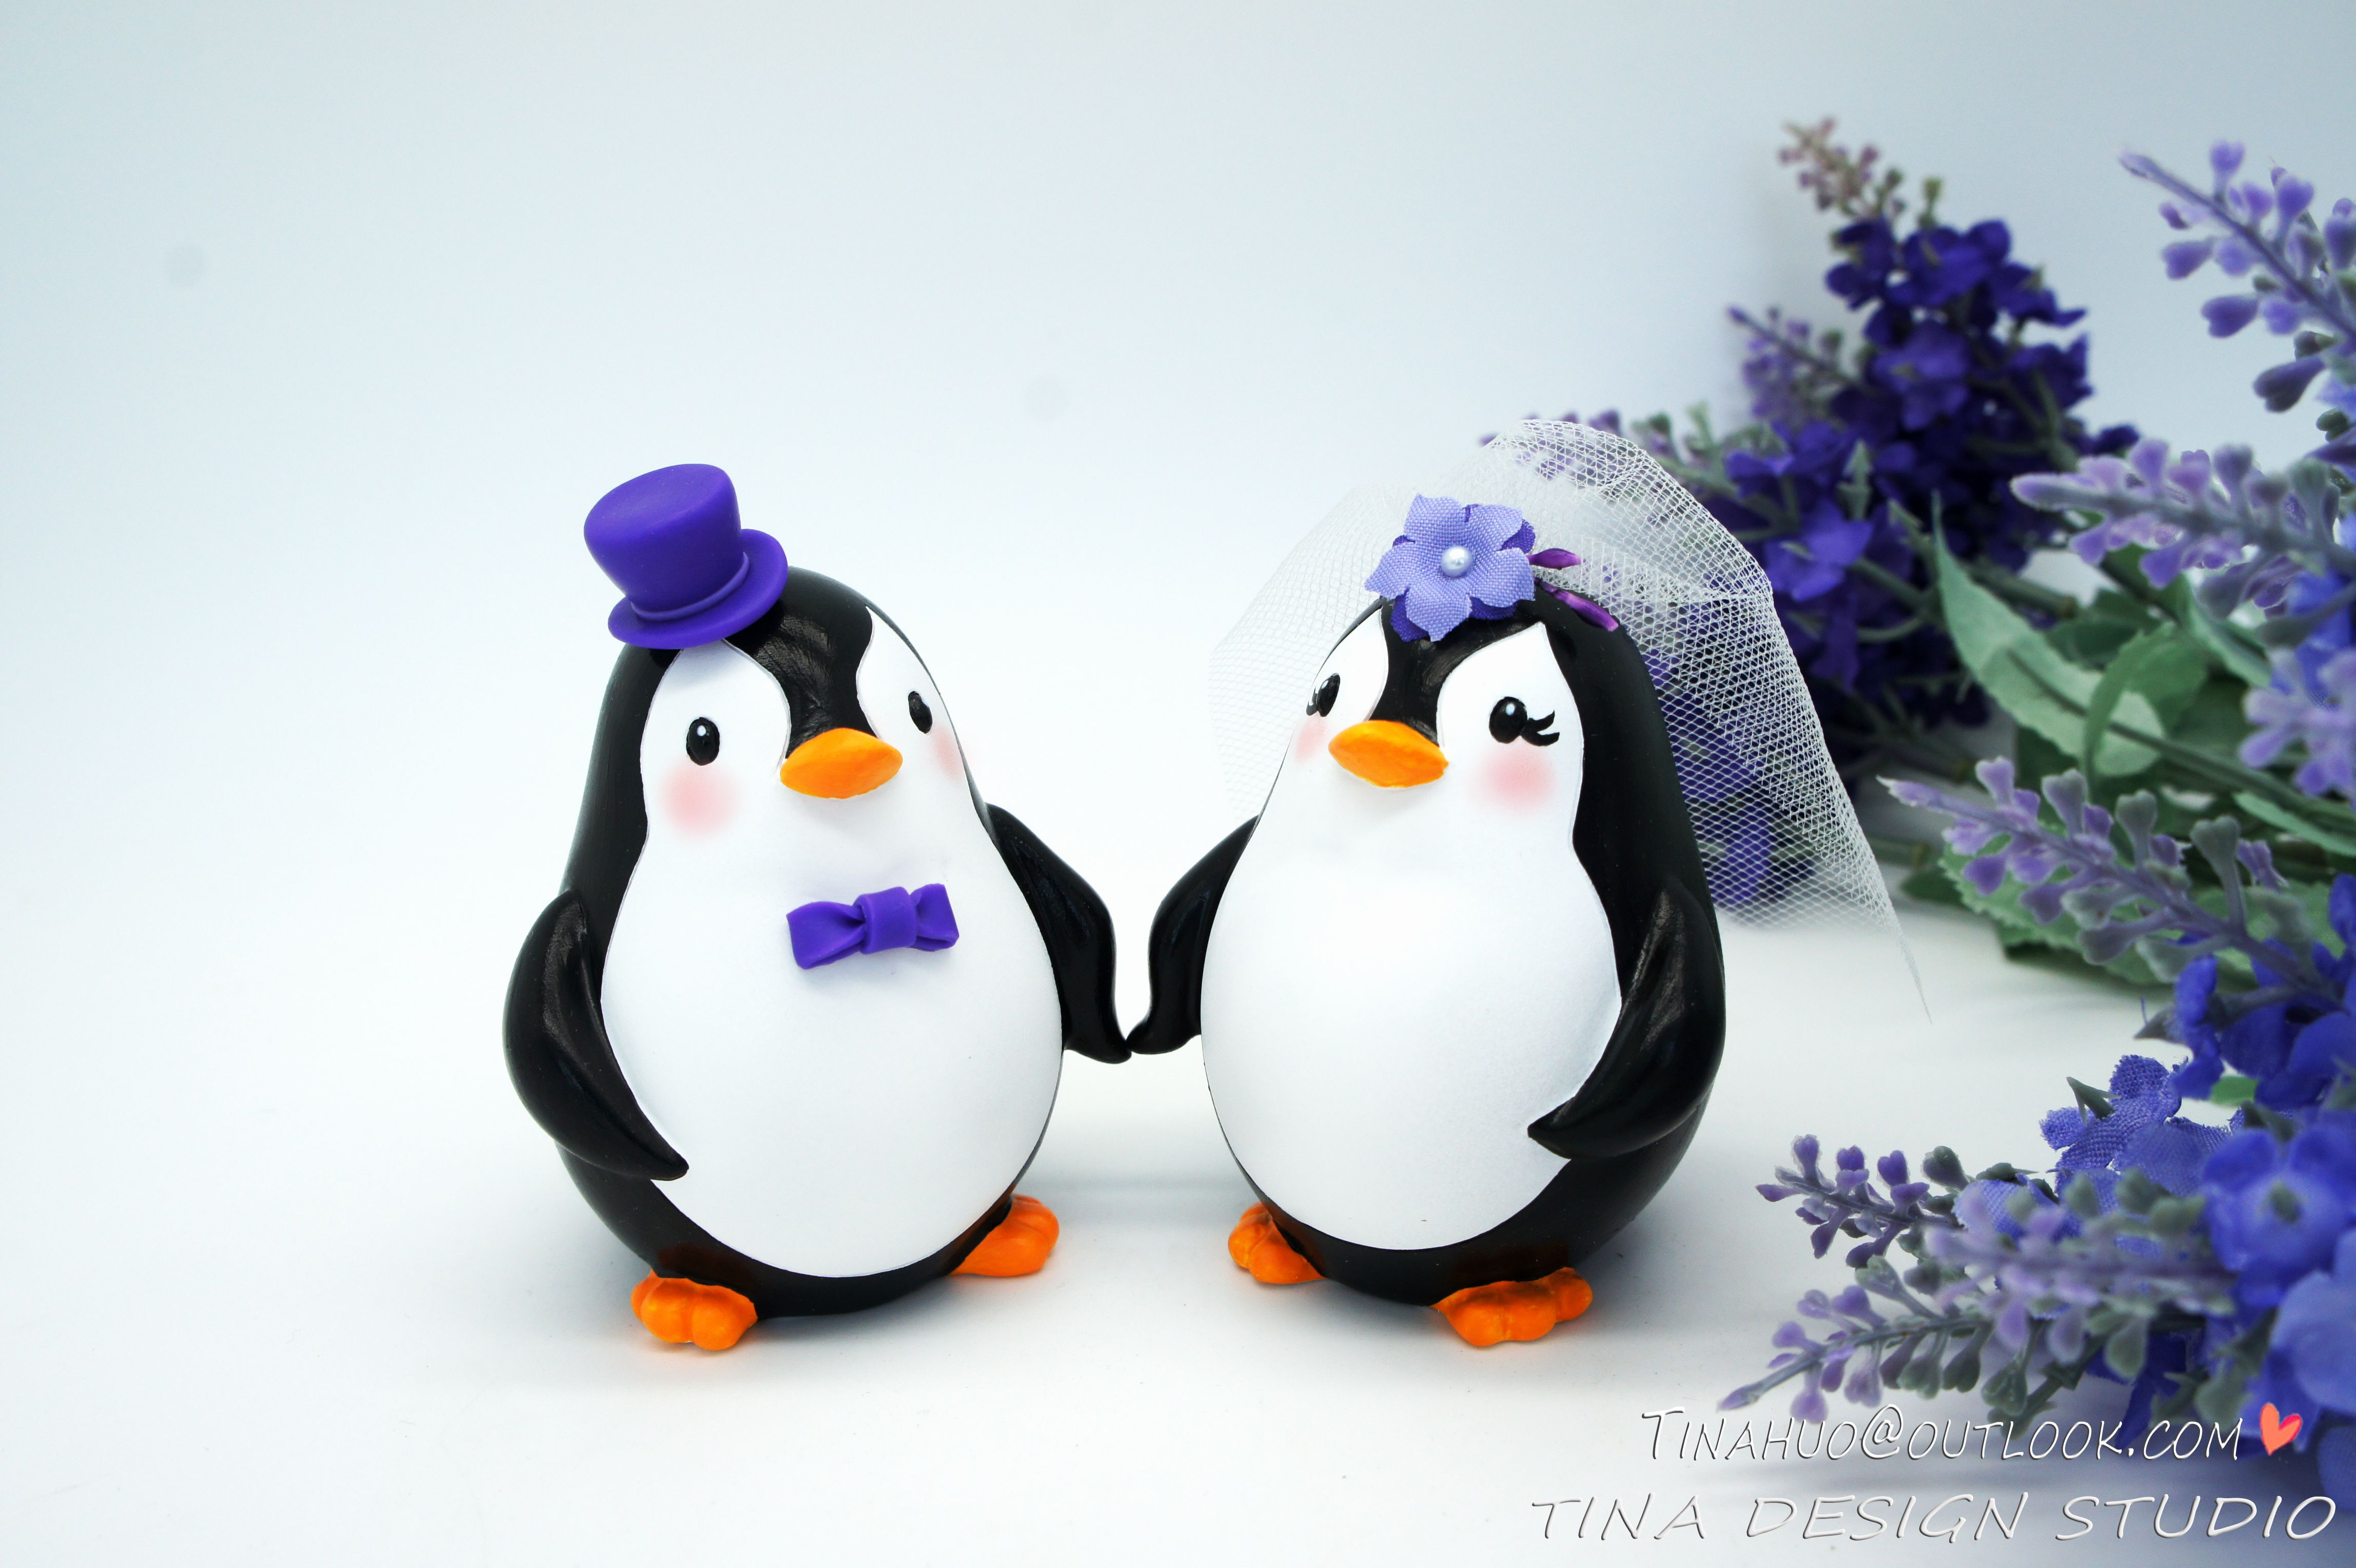 Magnificent Penguin Wedding Cake Topper Vignette - The Wedding Ideas ...